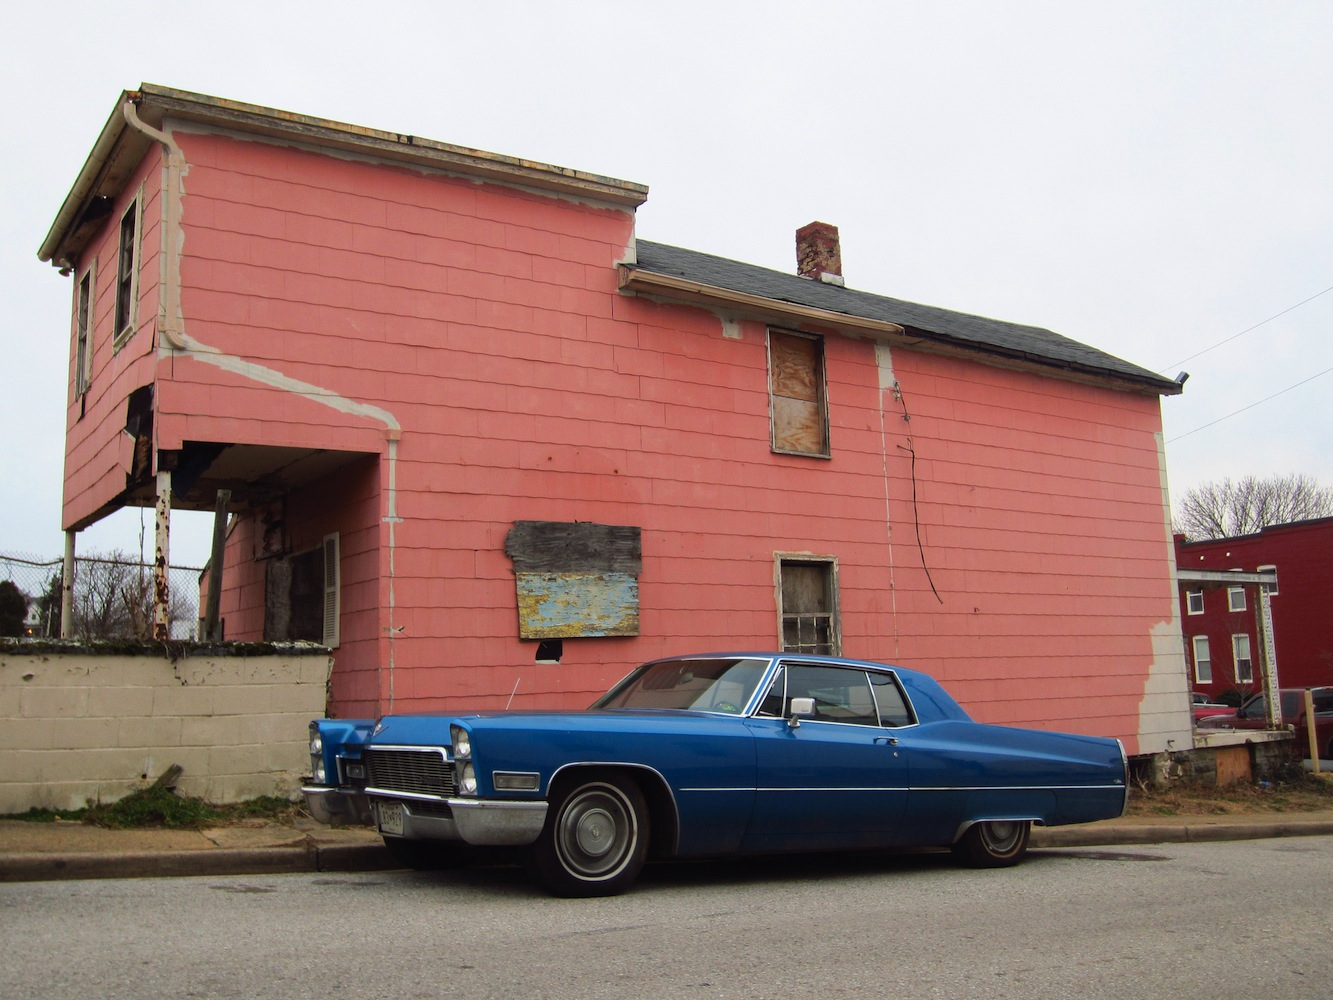 blue Cadillac, pink house